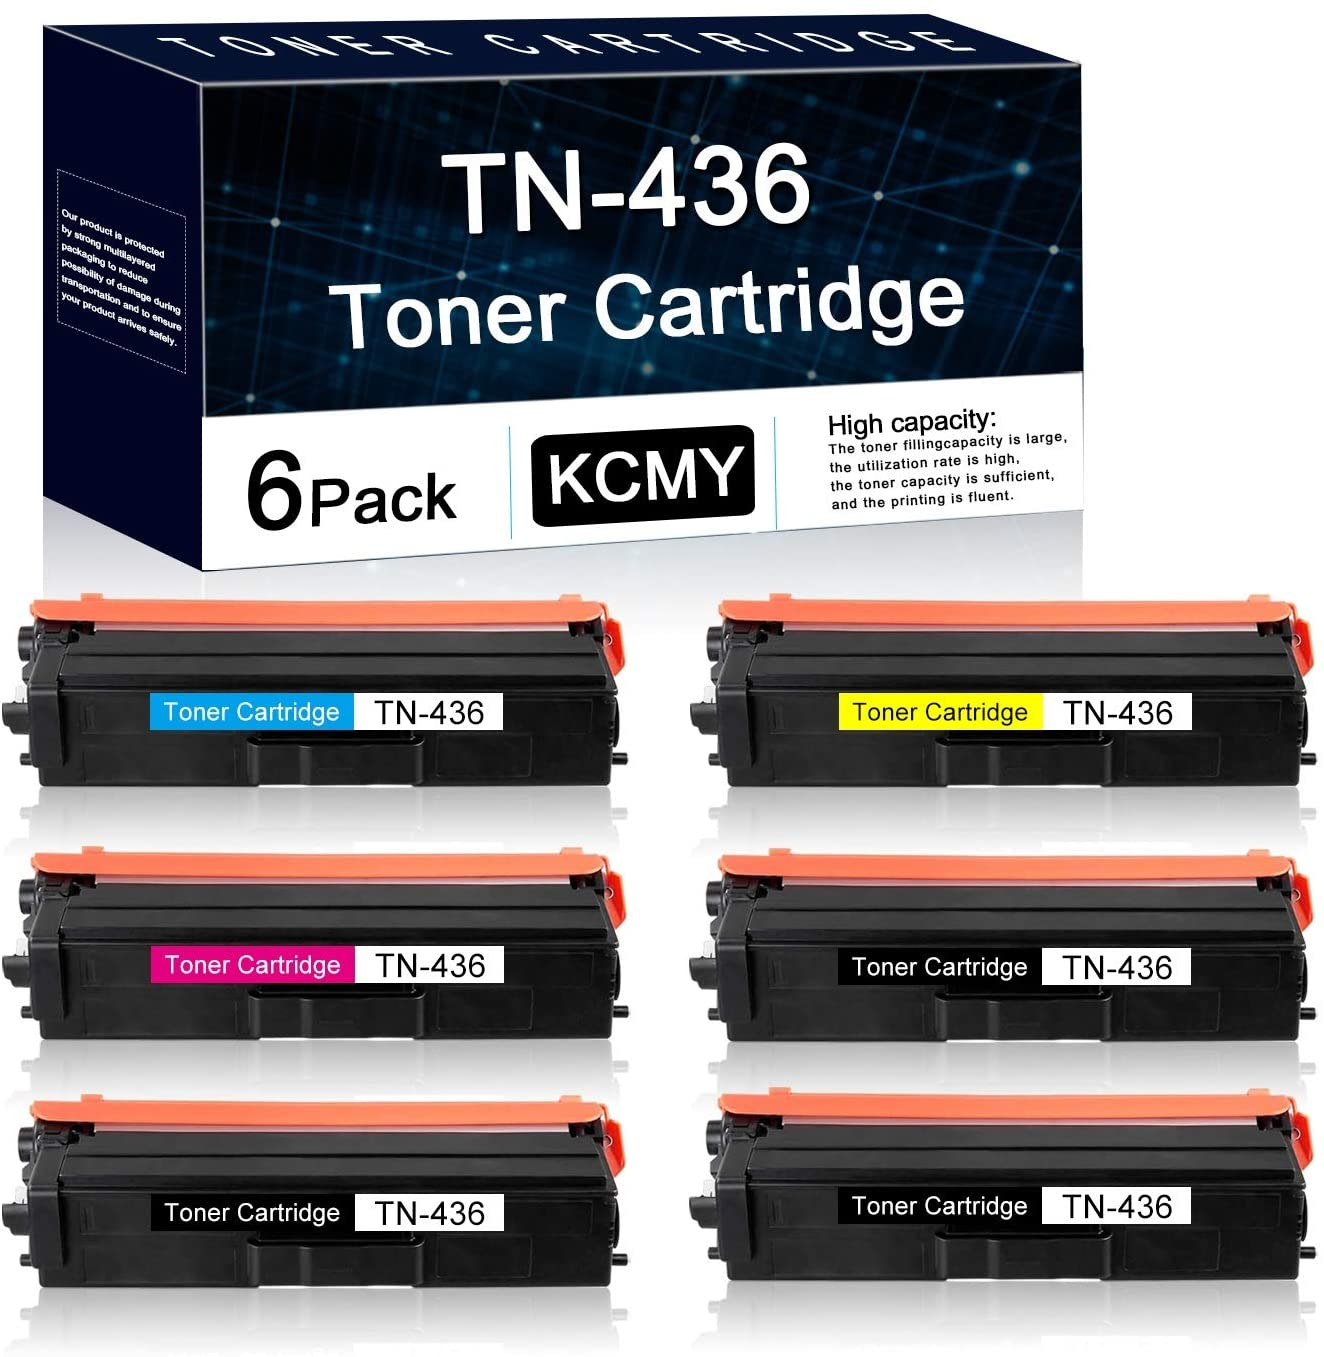 6 Pack TN436 (3BK+1C+1M+1Y) Compatible Toner Cartridge Replacement for Brother HL-L8260CDW L8360CDW L8360CDWT L9310CDW L9310CDWT L9310CDWTT DCP-L8410CDW MFC-L8610CDW Printers Toner